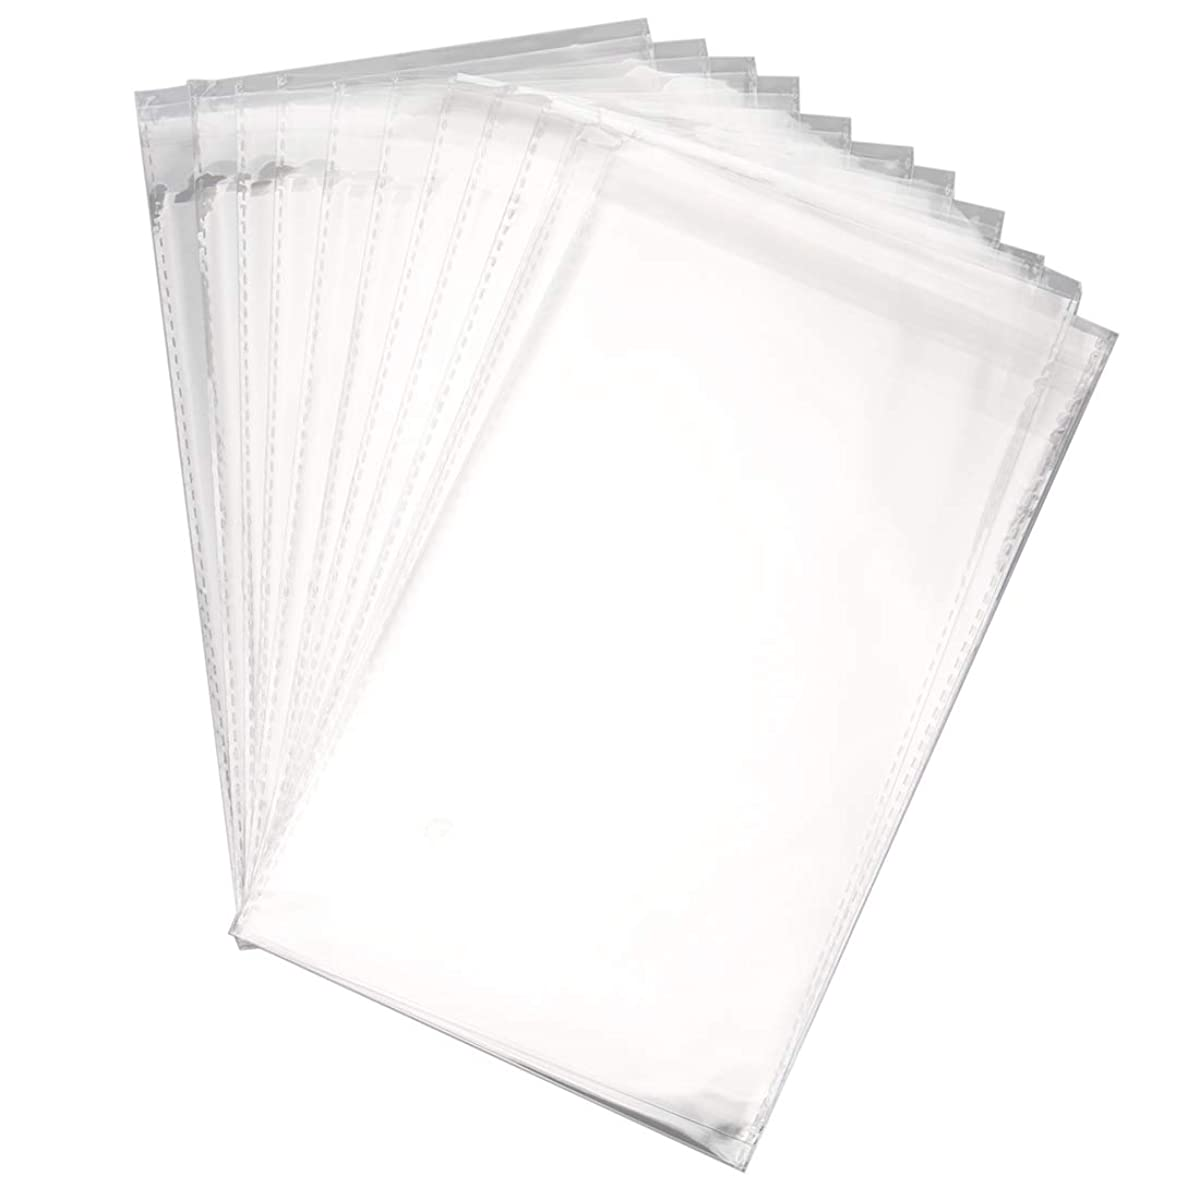 """Foraineam 400 Pcs 6"""" x 9"""" Clear Resealable Cellophane Bags Cello Bags, 3.5 Mils Thick Candy Bread Cookie Poly Bags"""